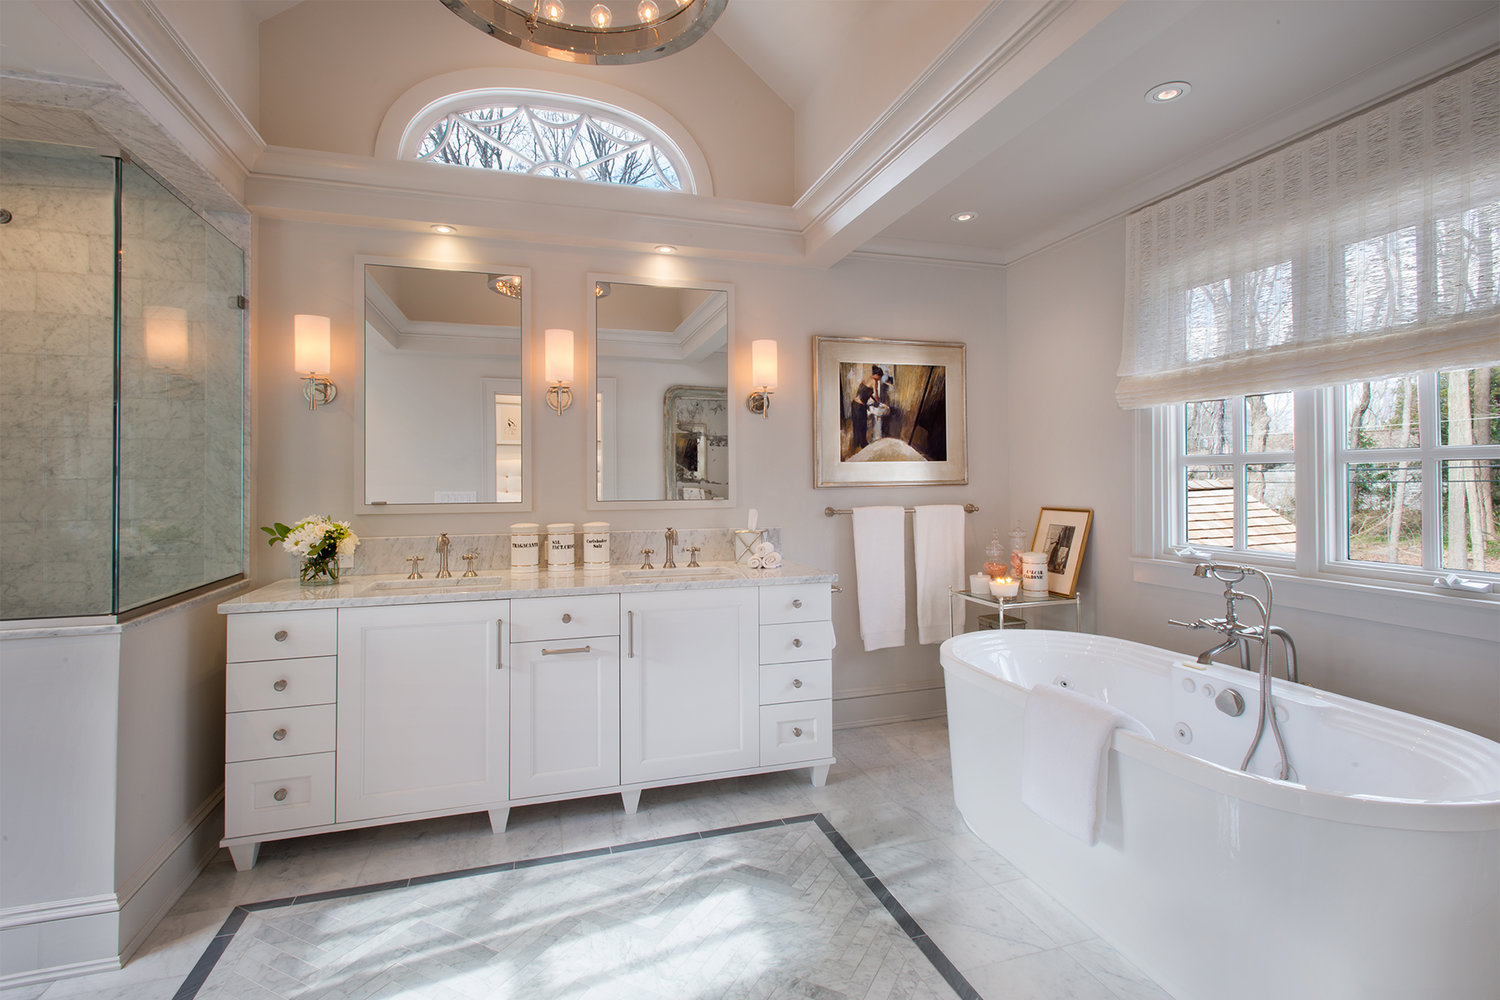 Bathroom Remodeling Greenwich CT Westchester County NY Form - Bathroom remodeling westchester ny